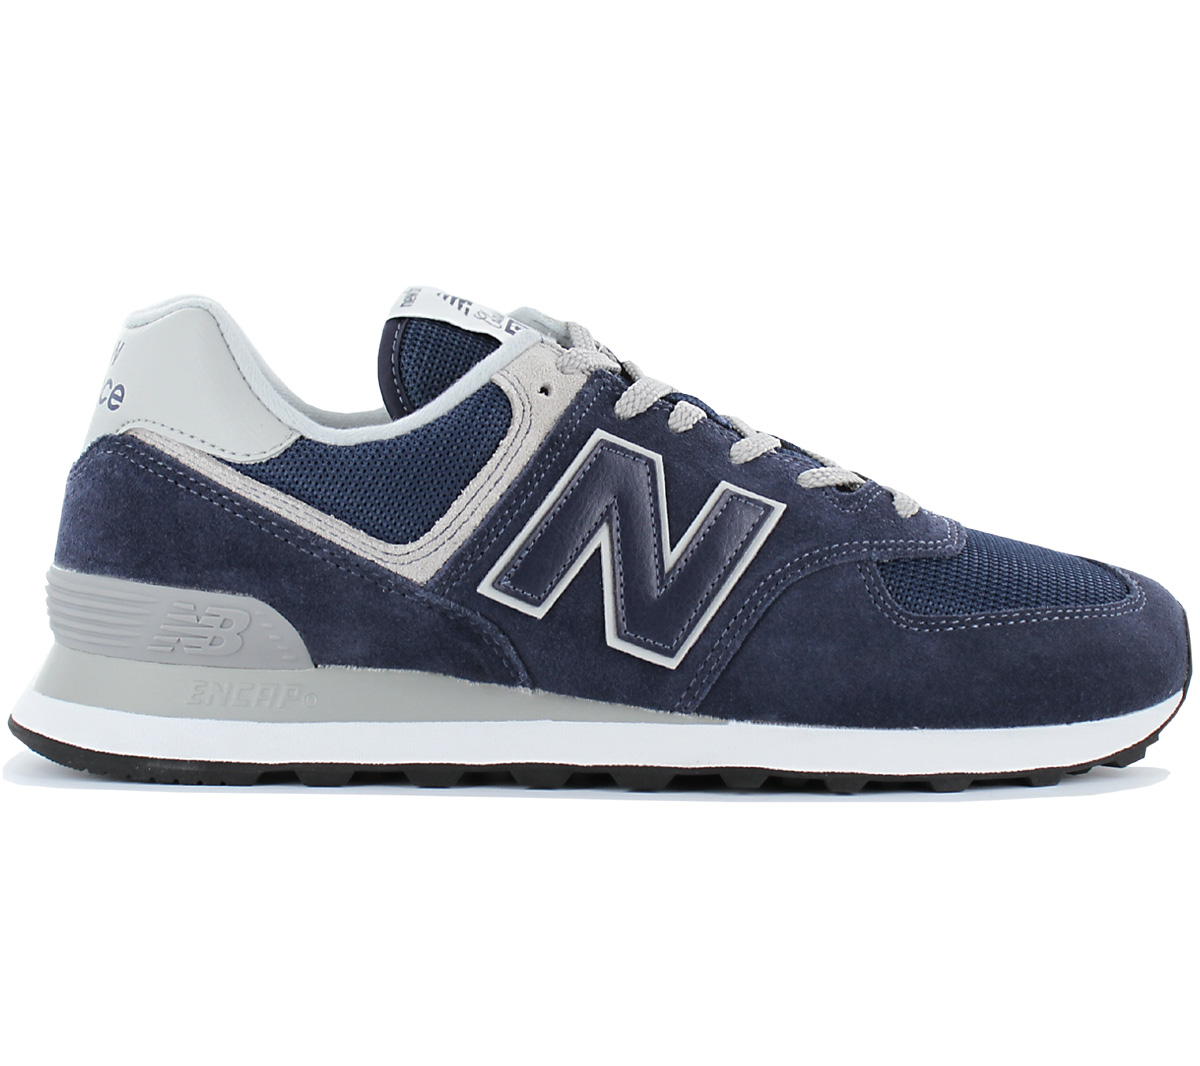 New Balance Men's Shoes Sneakers Boots Trainers 574 597 565 755 996 1550 New